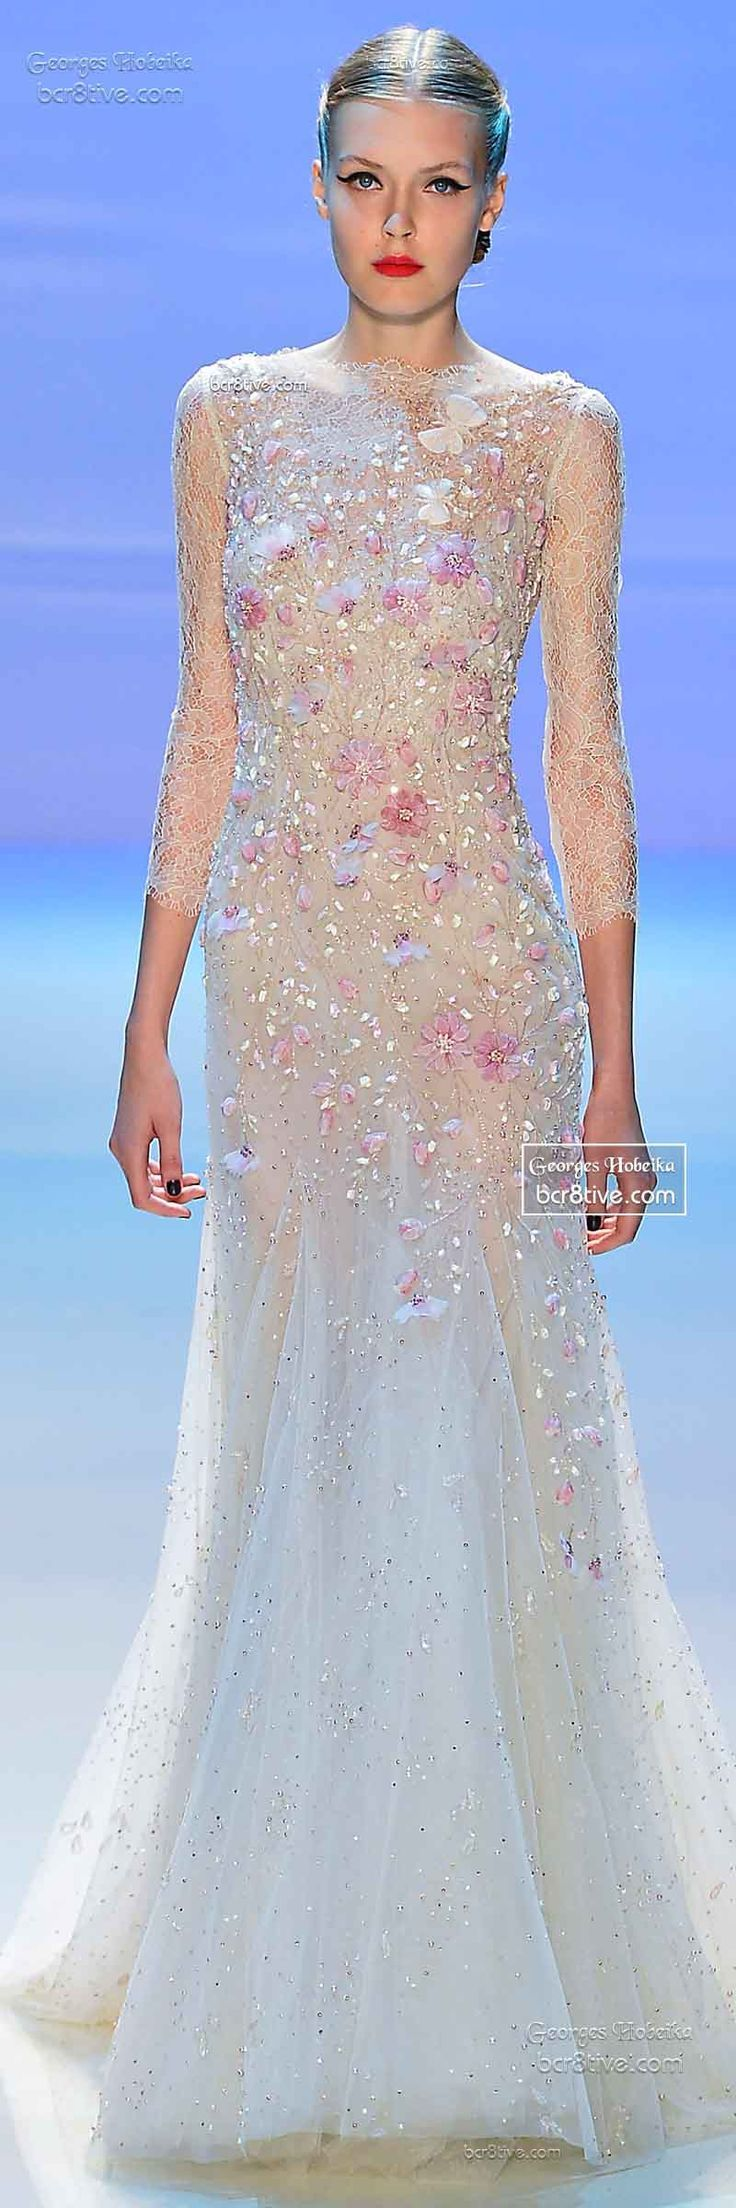 Monet's Midnight Stroll by Georges Hobeika FW 2014-15 Couture